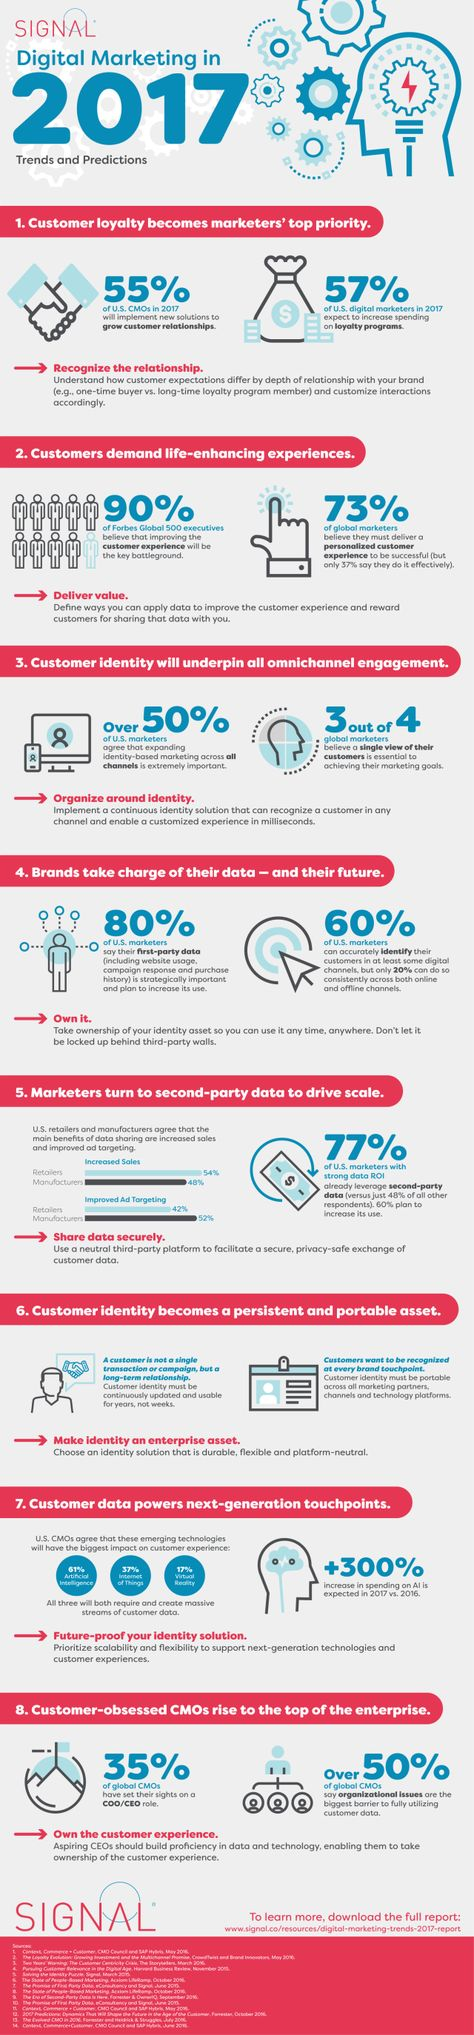 Is Personalization the New Buzz for 2017? (Infographic) – Adweek Marketing trends that will take center stage in 2017.